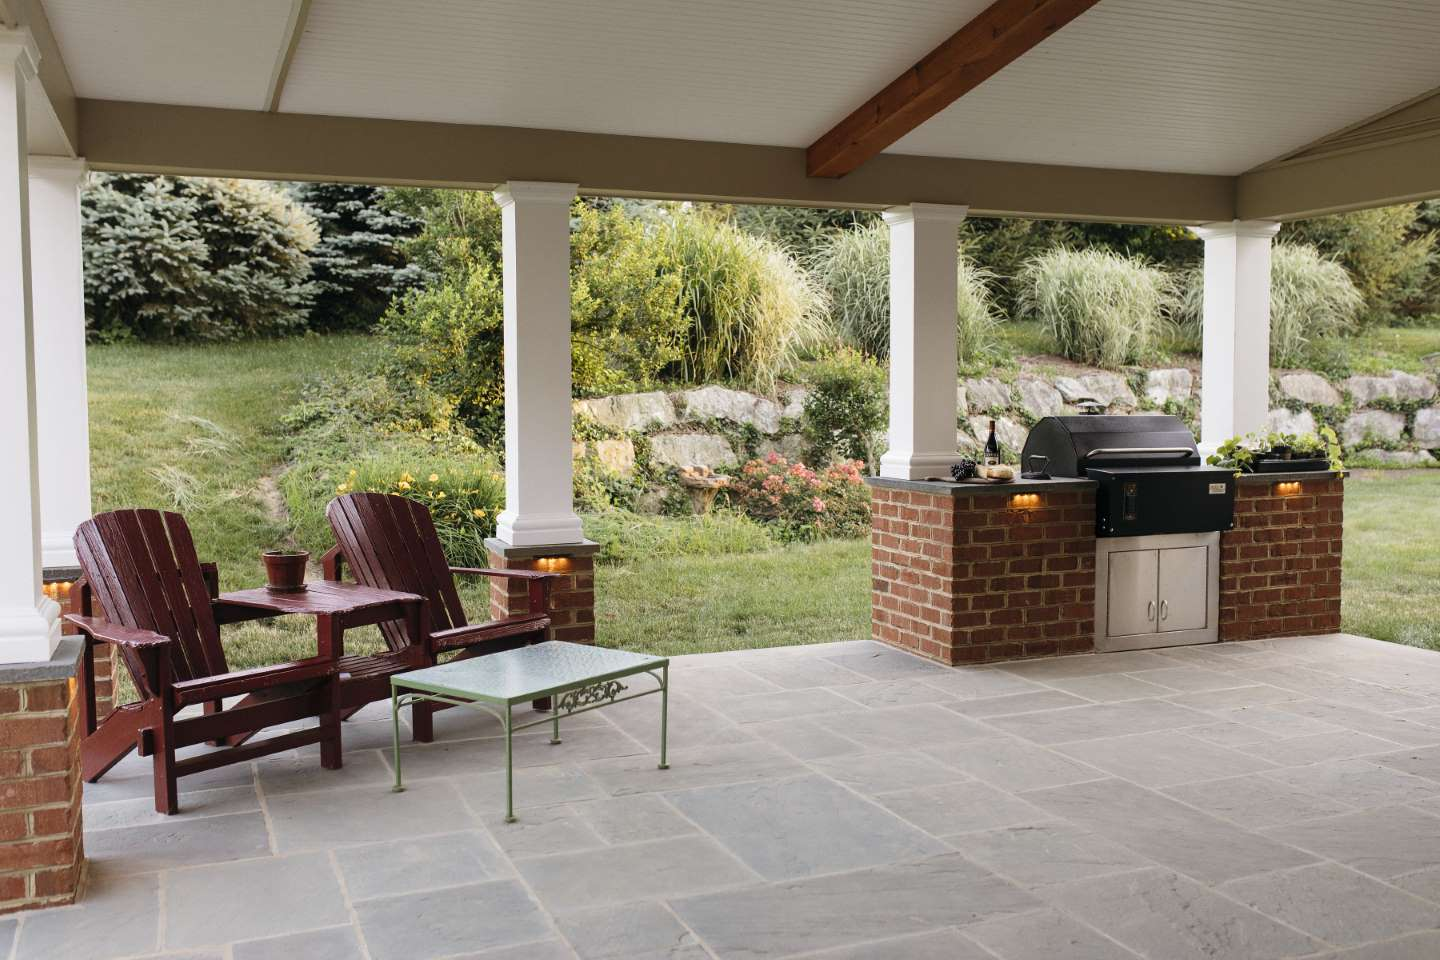 outdoor stone patio and grill